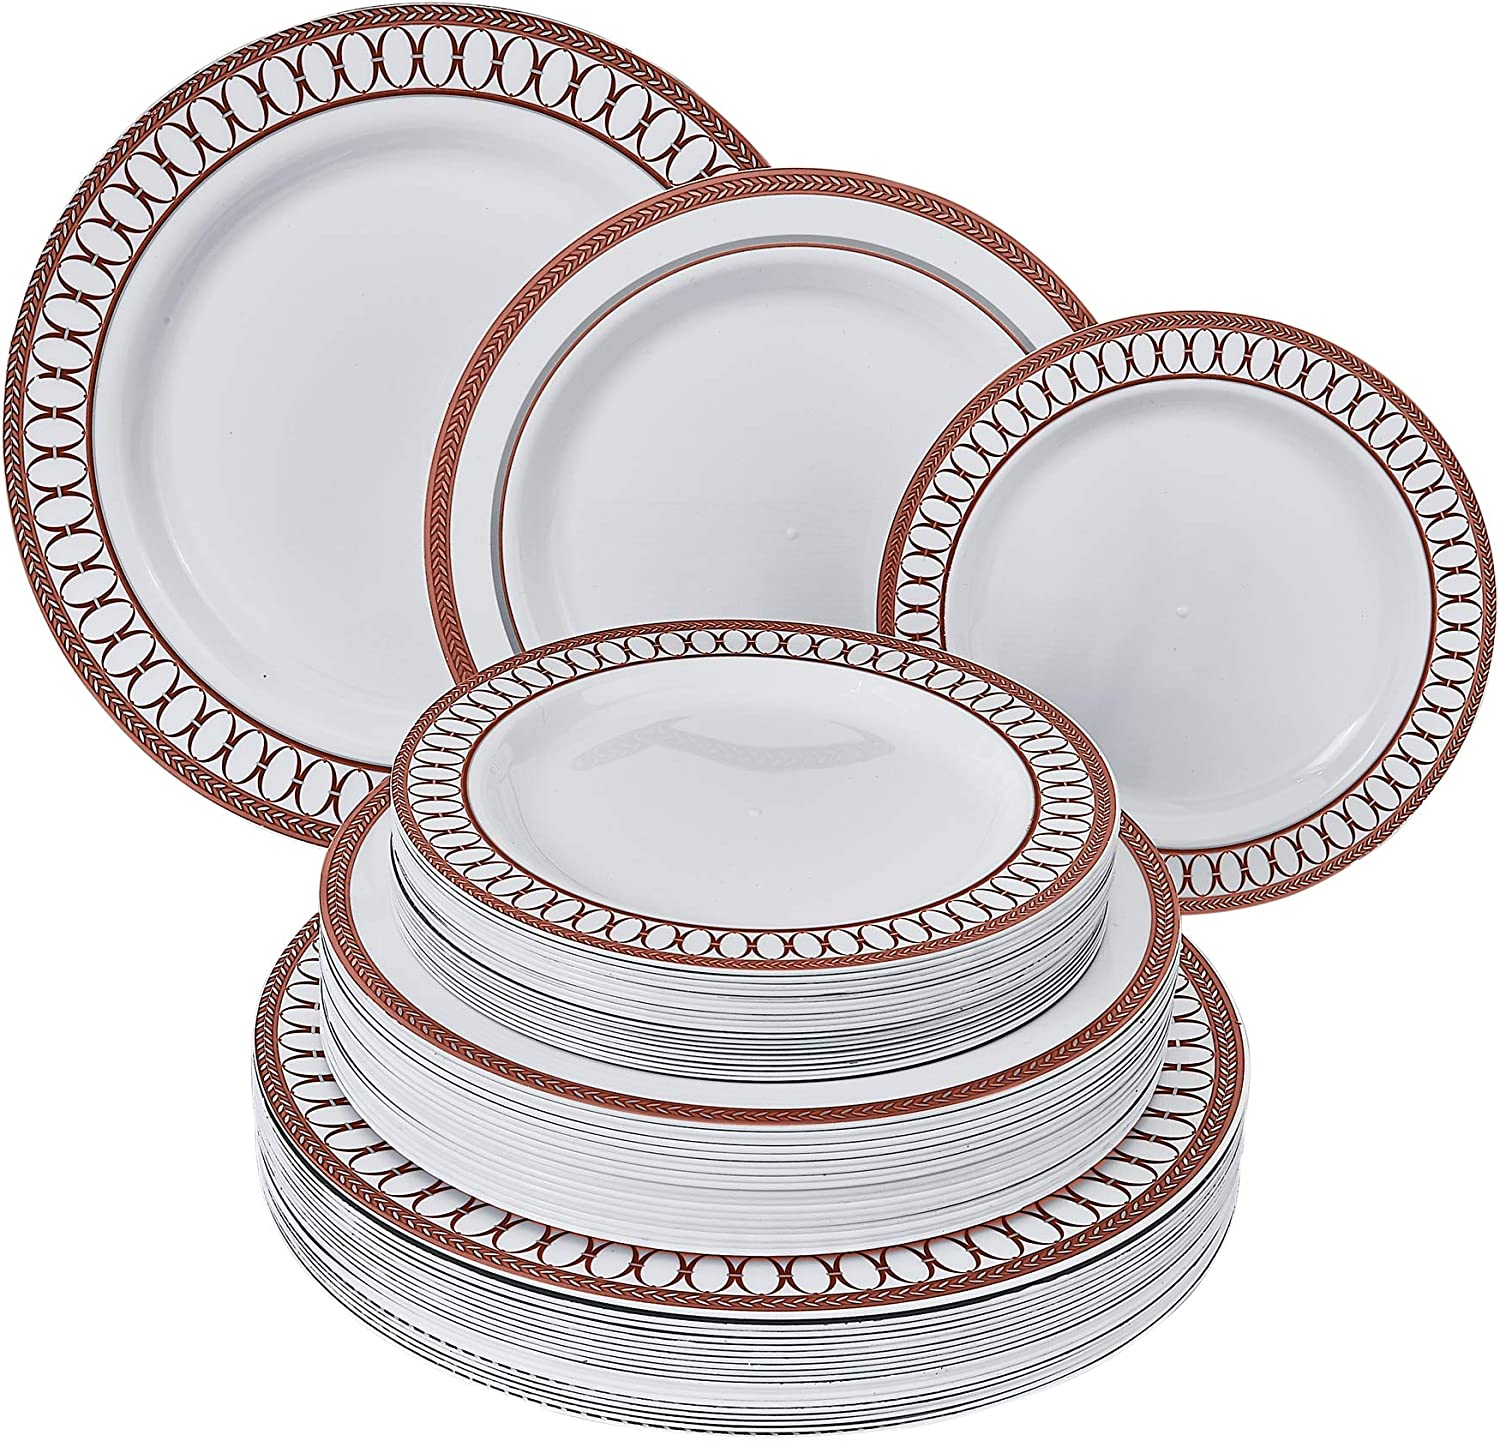 DISPOSABLE DINNERWARE SET | Heavy Duty Plastic Dishes for Christmas Holiday | Includes: 80 Dinner Plates, 80 Salad Plates and 80 Dessert Plates | Renaissance Collection – Red